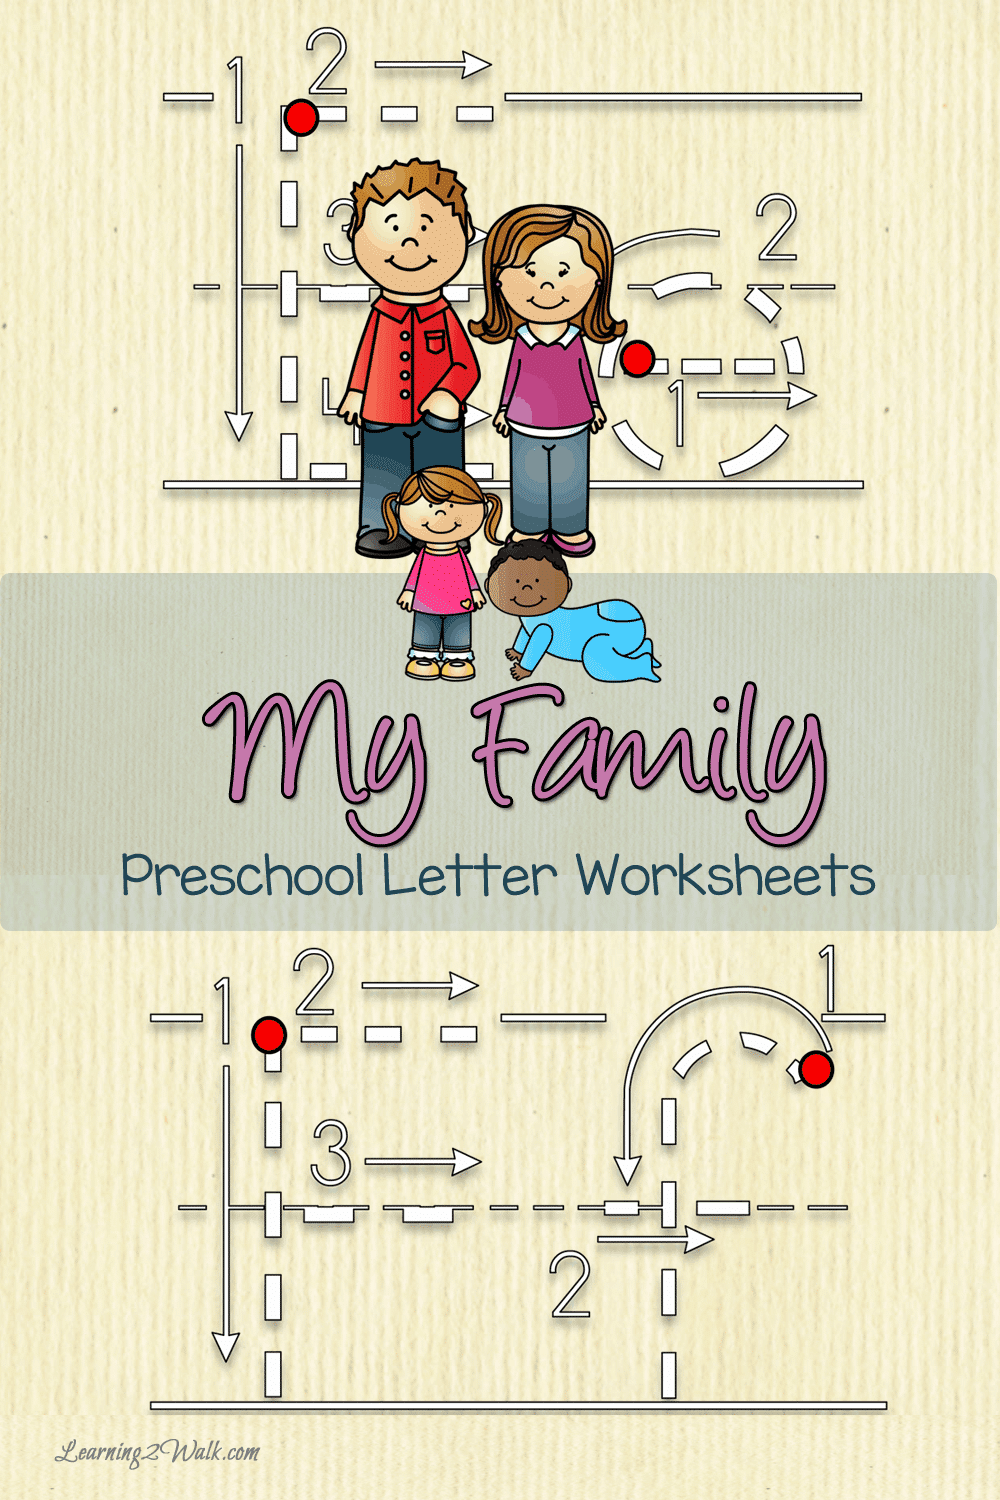 My Family Preschool Letter Worksheets